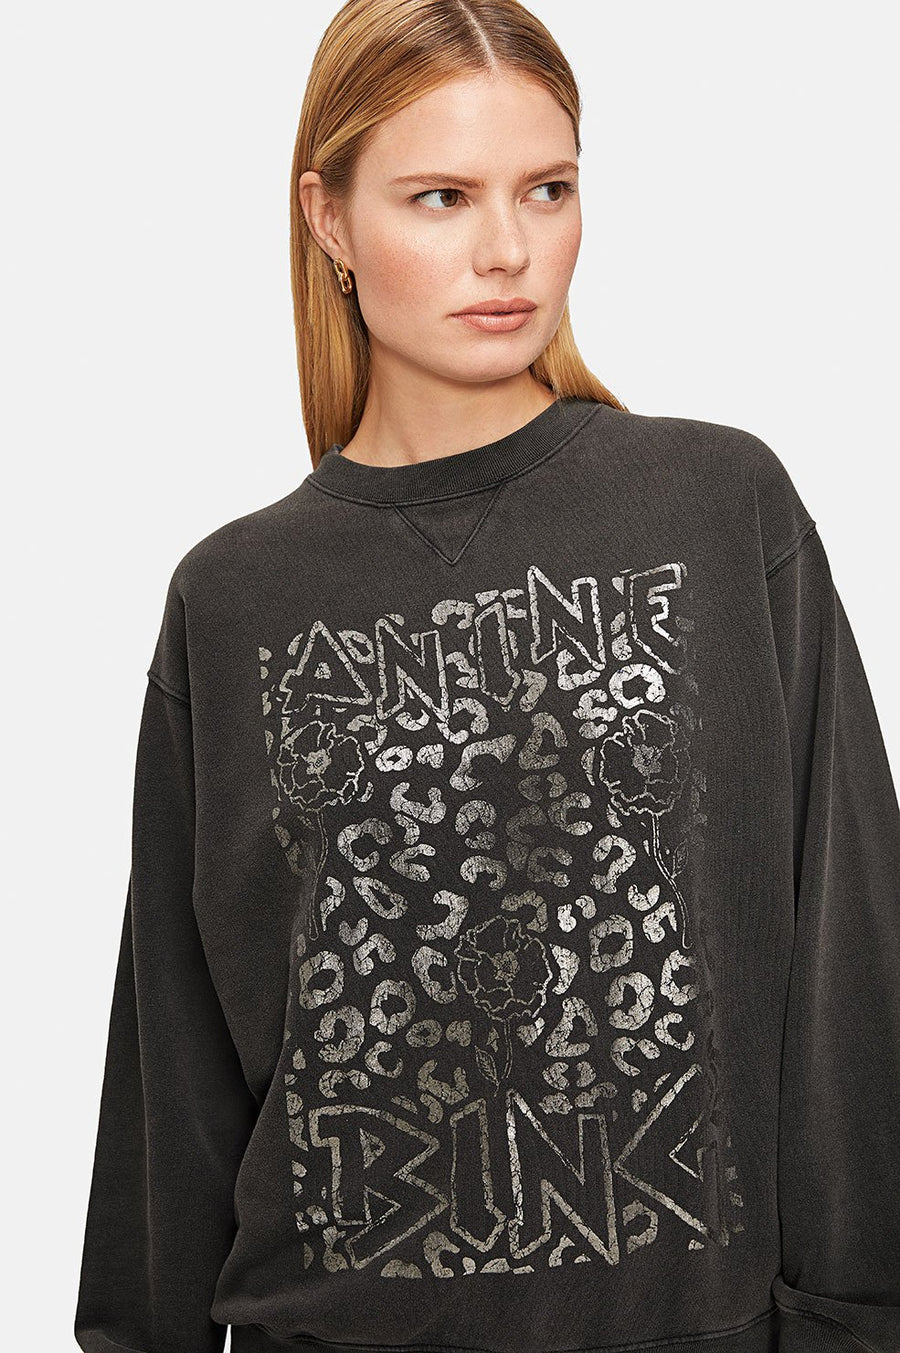 Ramona Sweatshirt Leopard Print - Washed Black